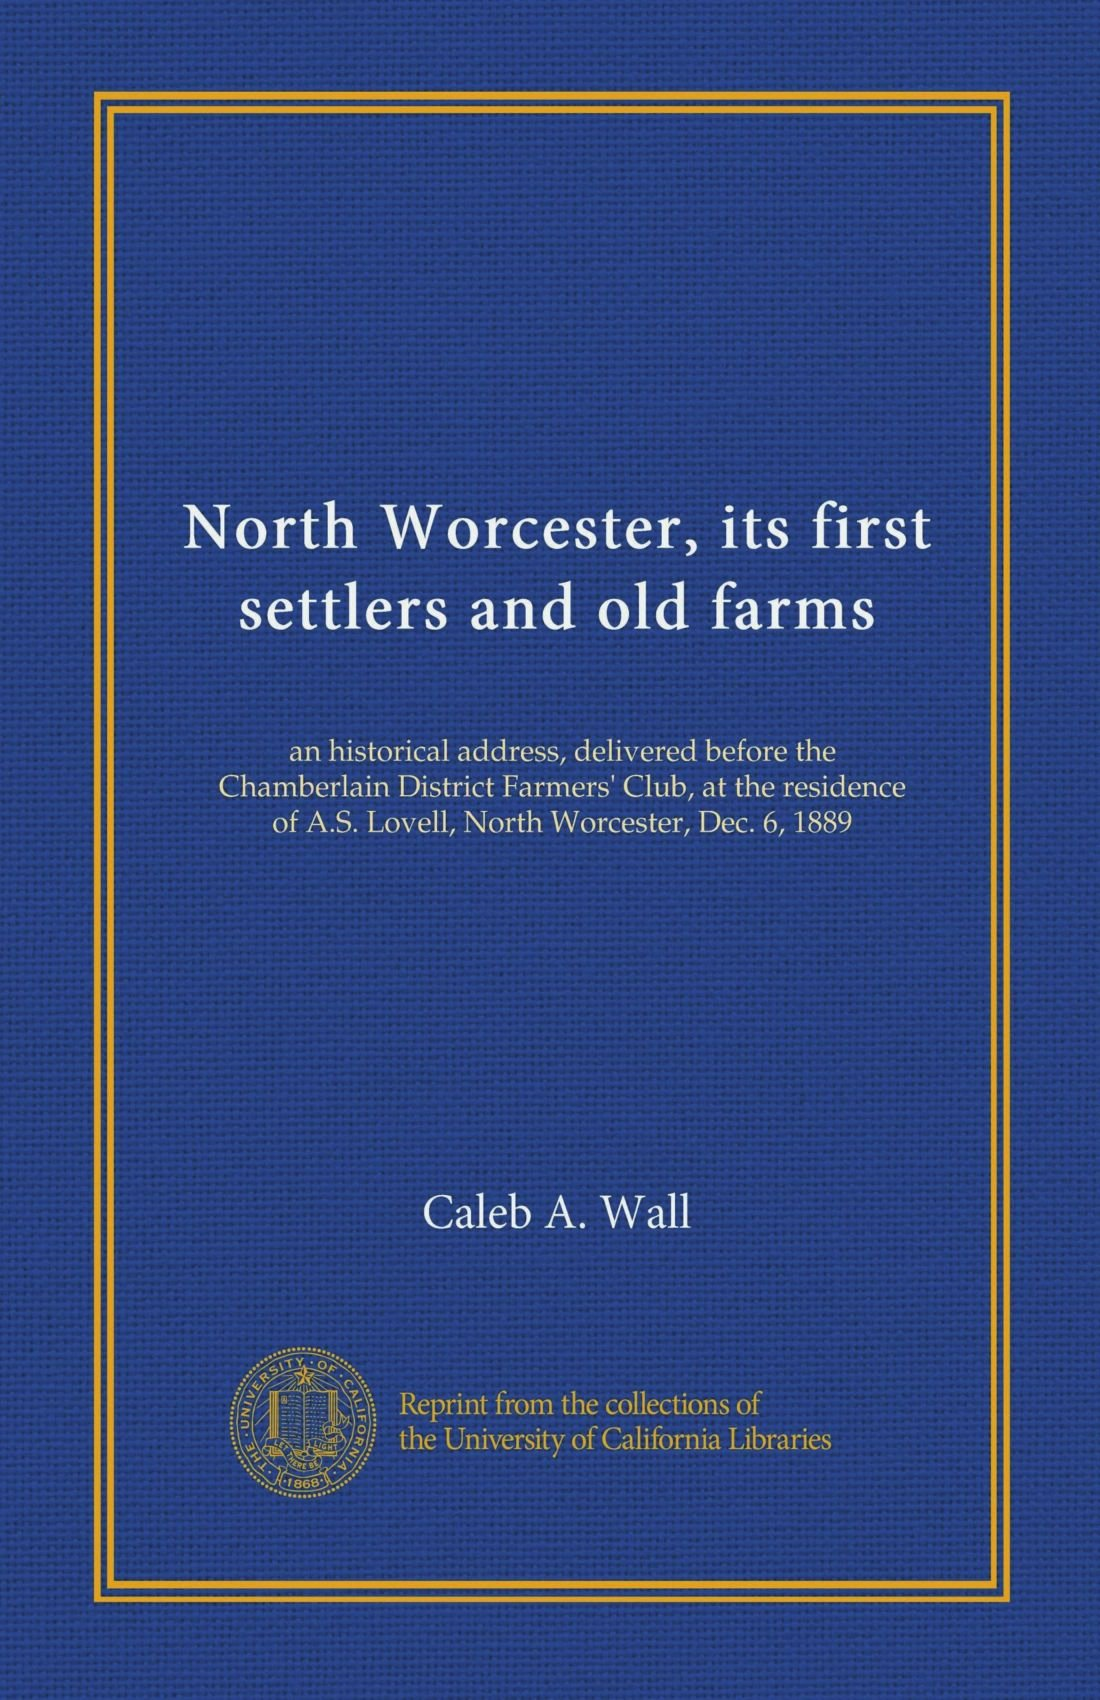 Download North Worcester, its first settlers and old farms: an historical address, delivered before the Chamberlain District Farmers' Club, at the residence of A.S. Lovell, North Worcester, Dec. 6, 1889 pdf